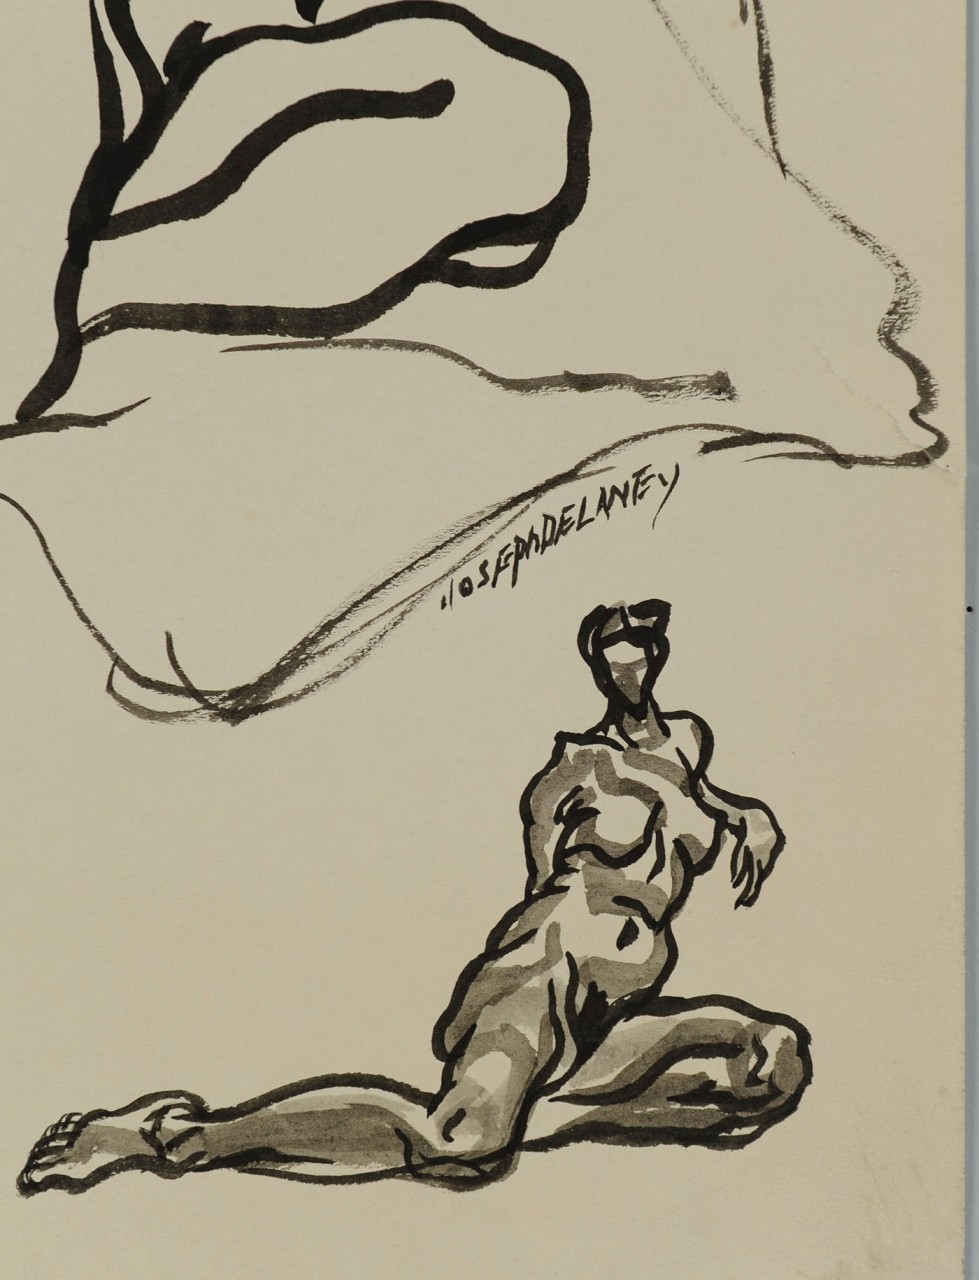 Lot 183: Signed Joseph Delaney Ink Drawing, two nudes